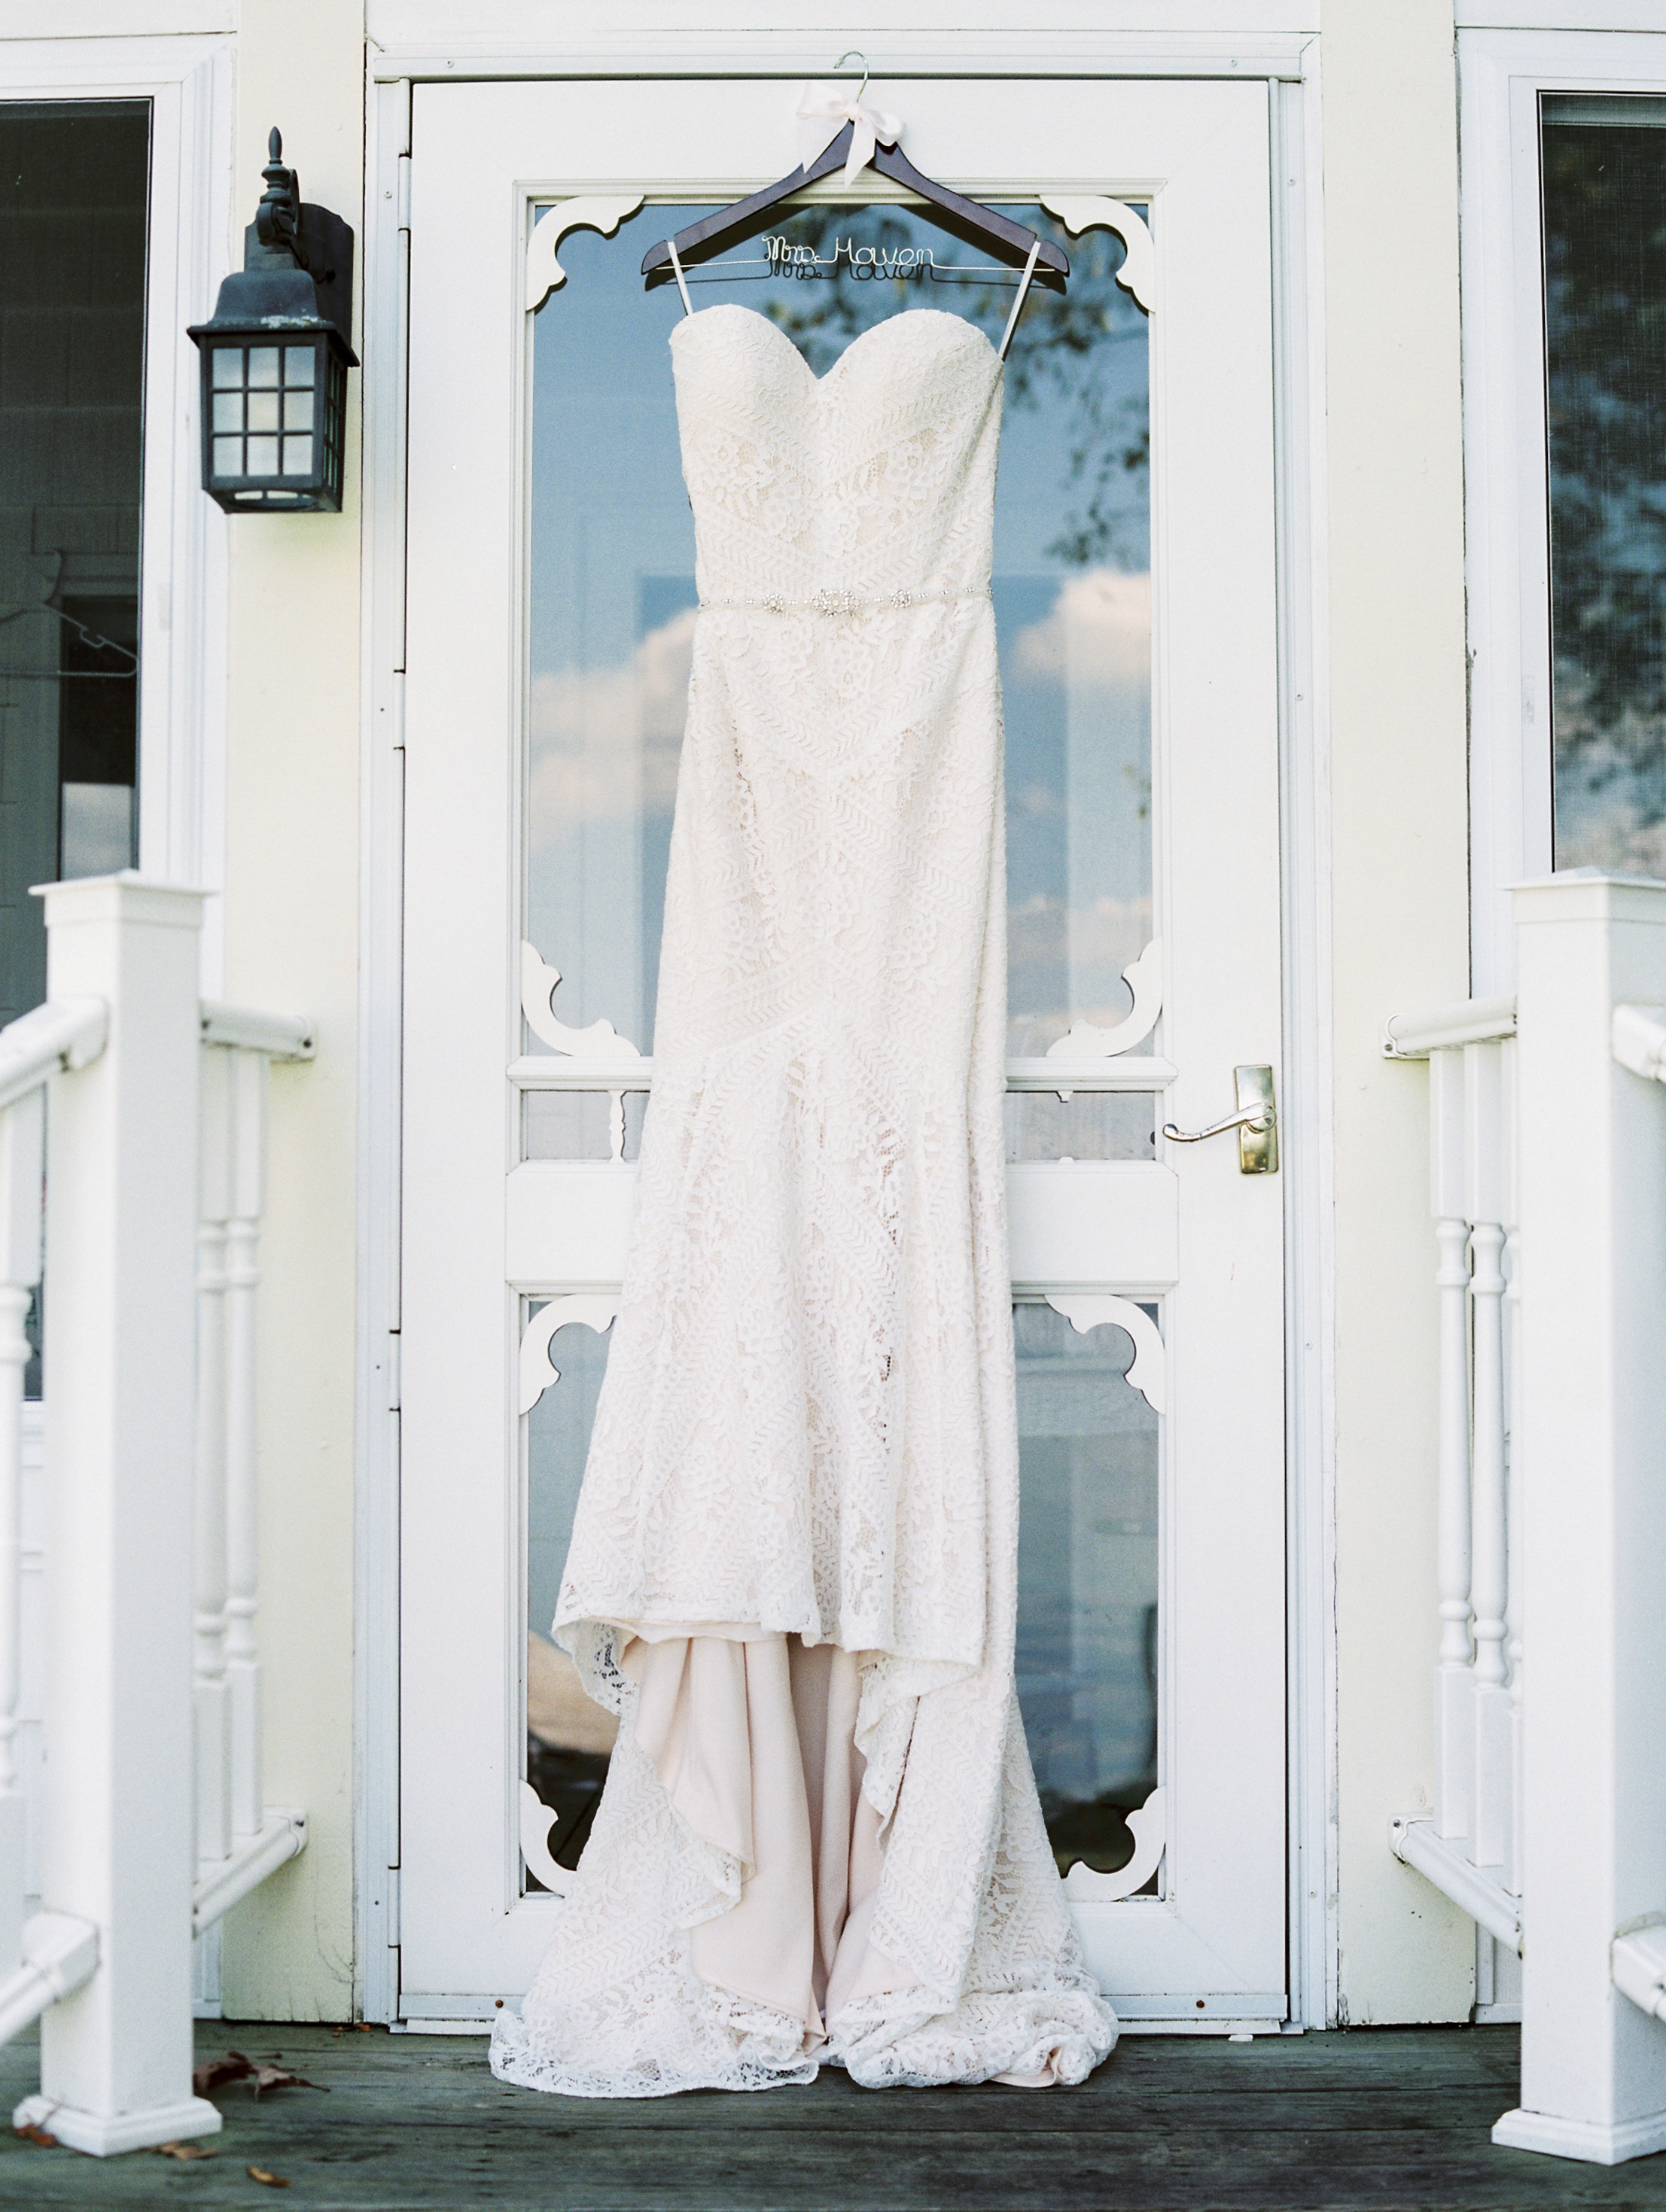 Haven+Wedding+Details-13.jpg